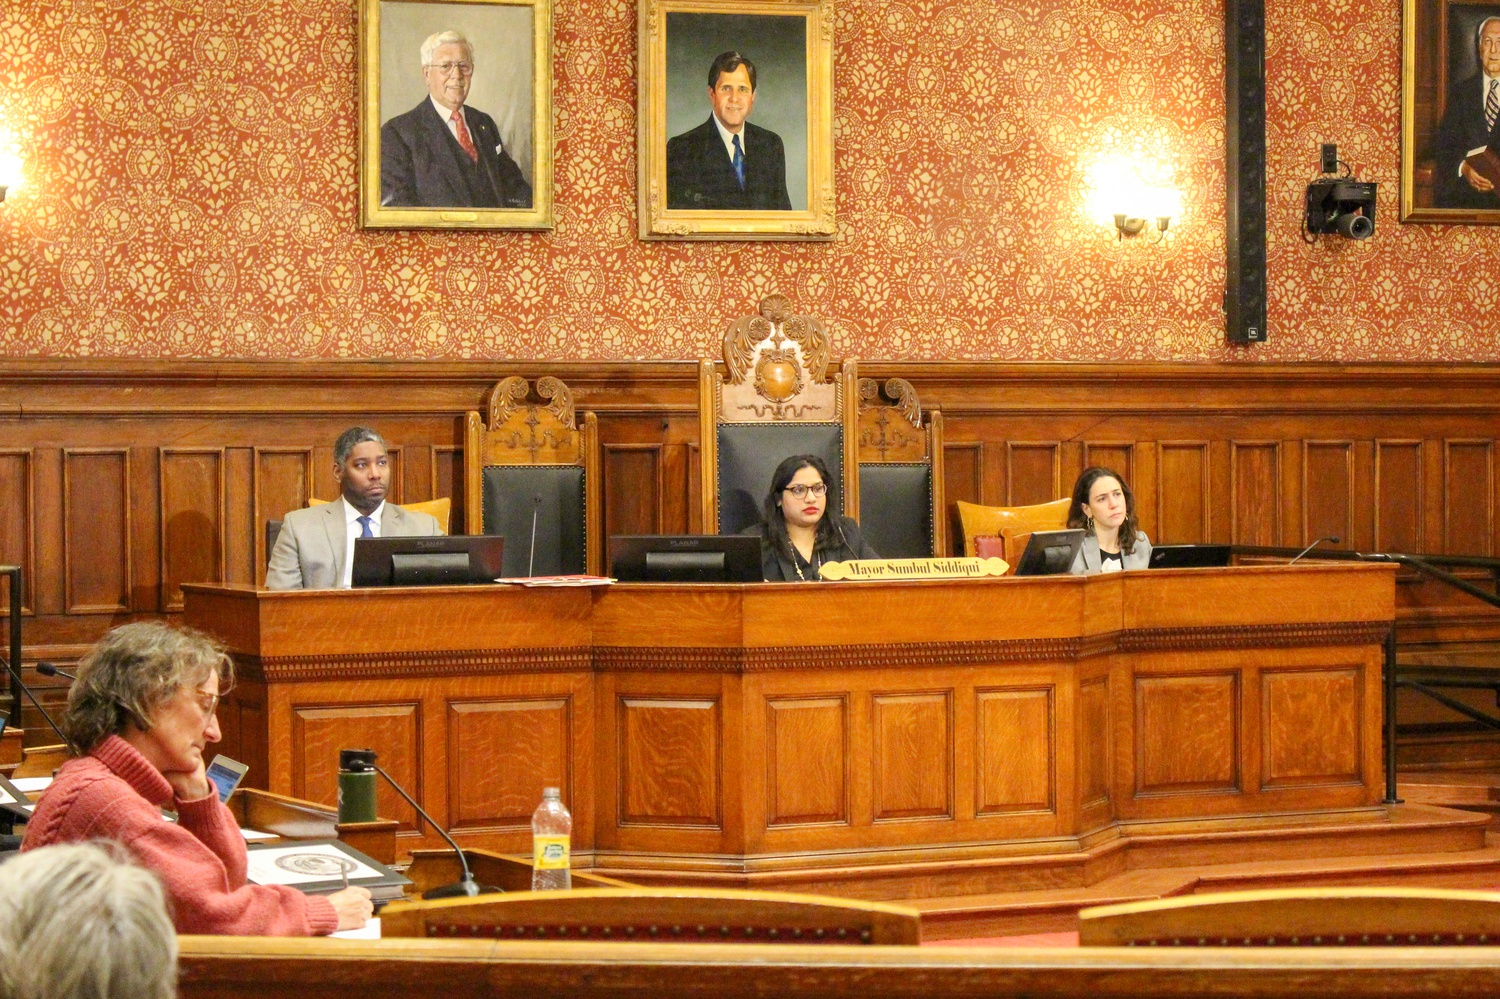 At the weekly scheduled meeting of the Cambridge City Council, which met on Monday evening in the Sullivan Chamber, Cambridge residents spoke about the 2019 Citizenship Amendment Act of India.